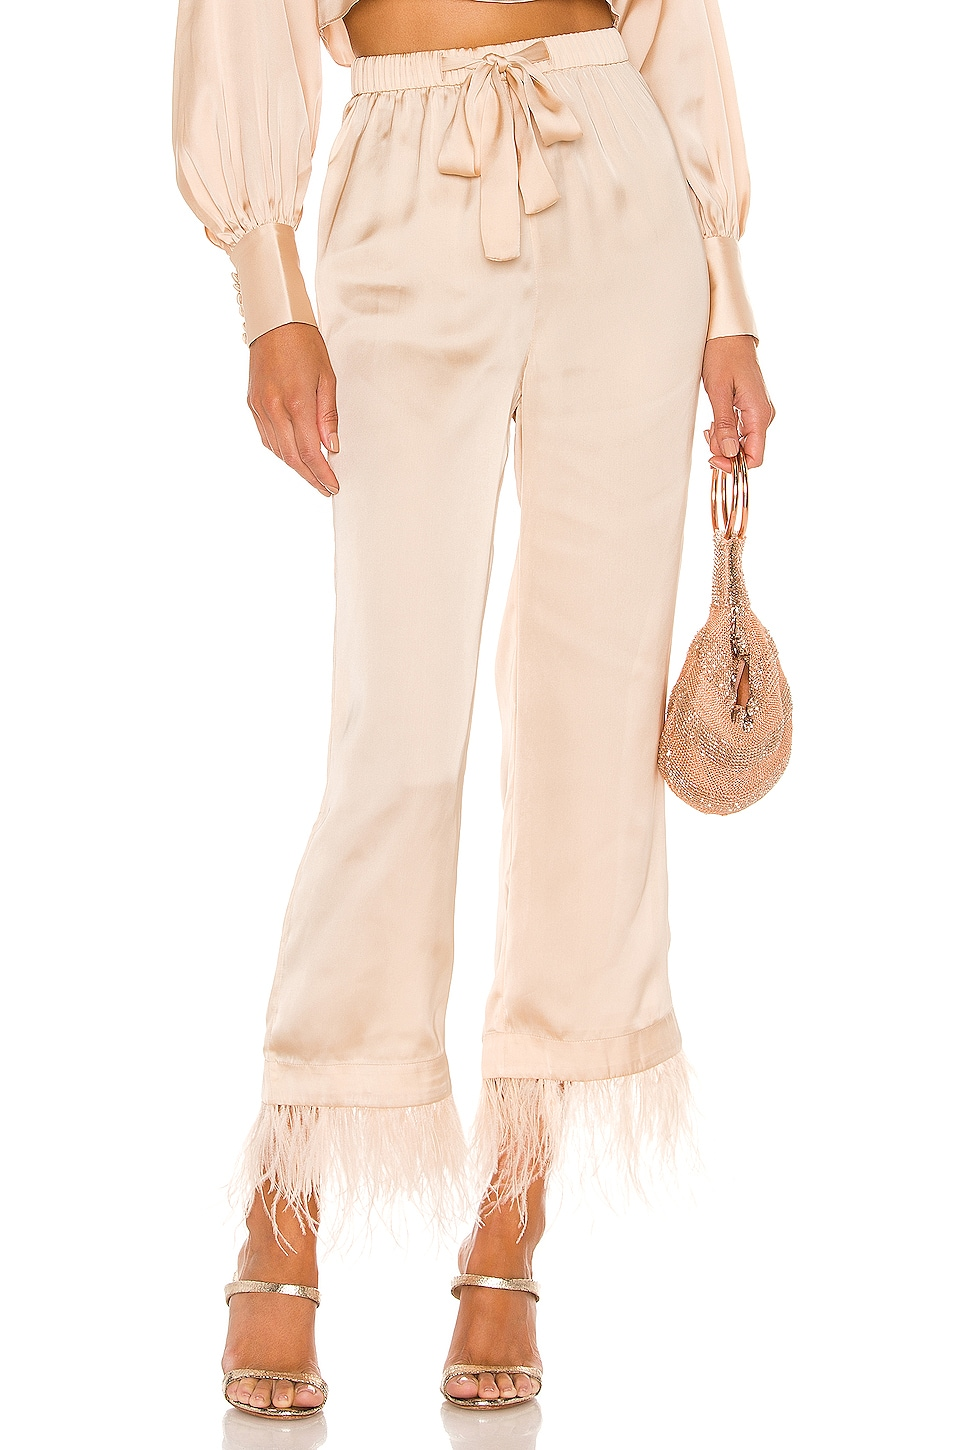 L'Academie The Chantal Pant in Ivory Cream